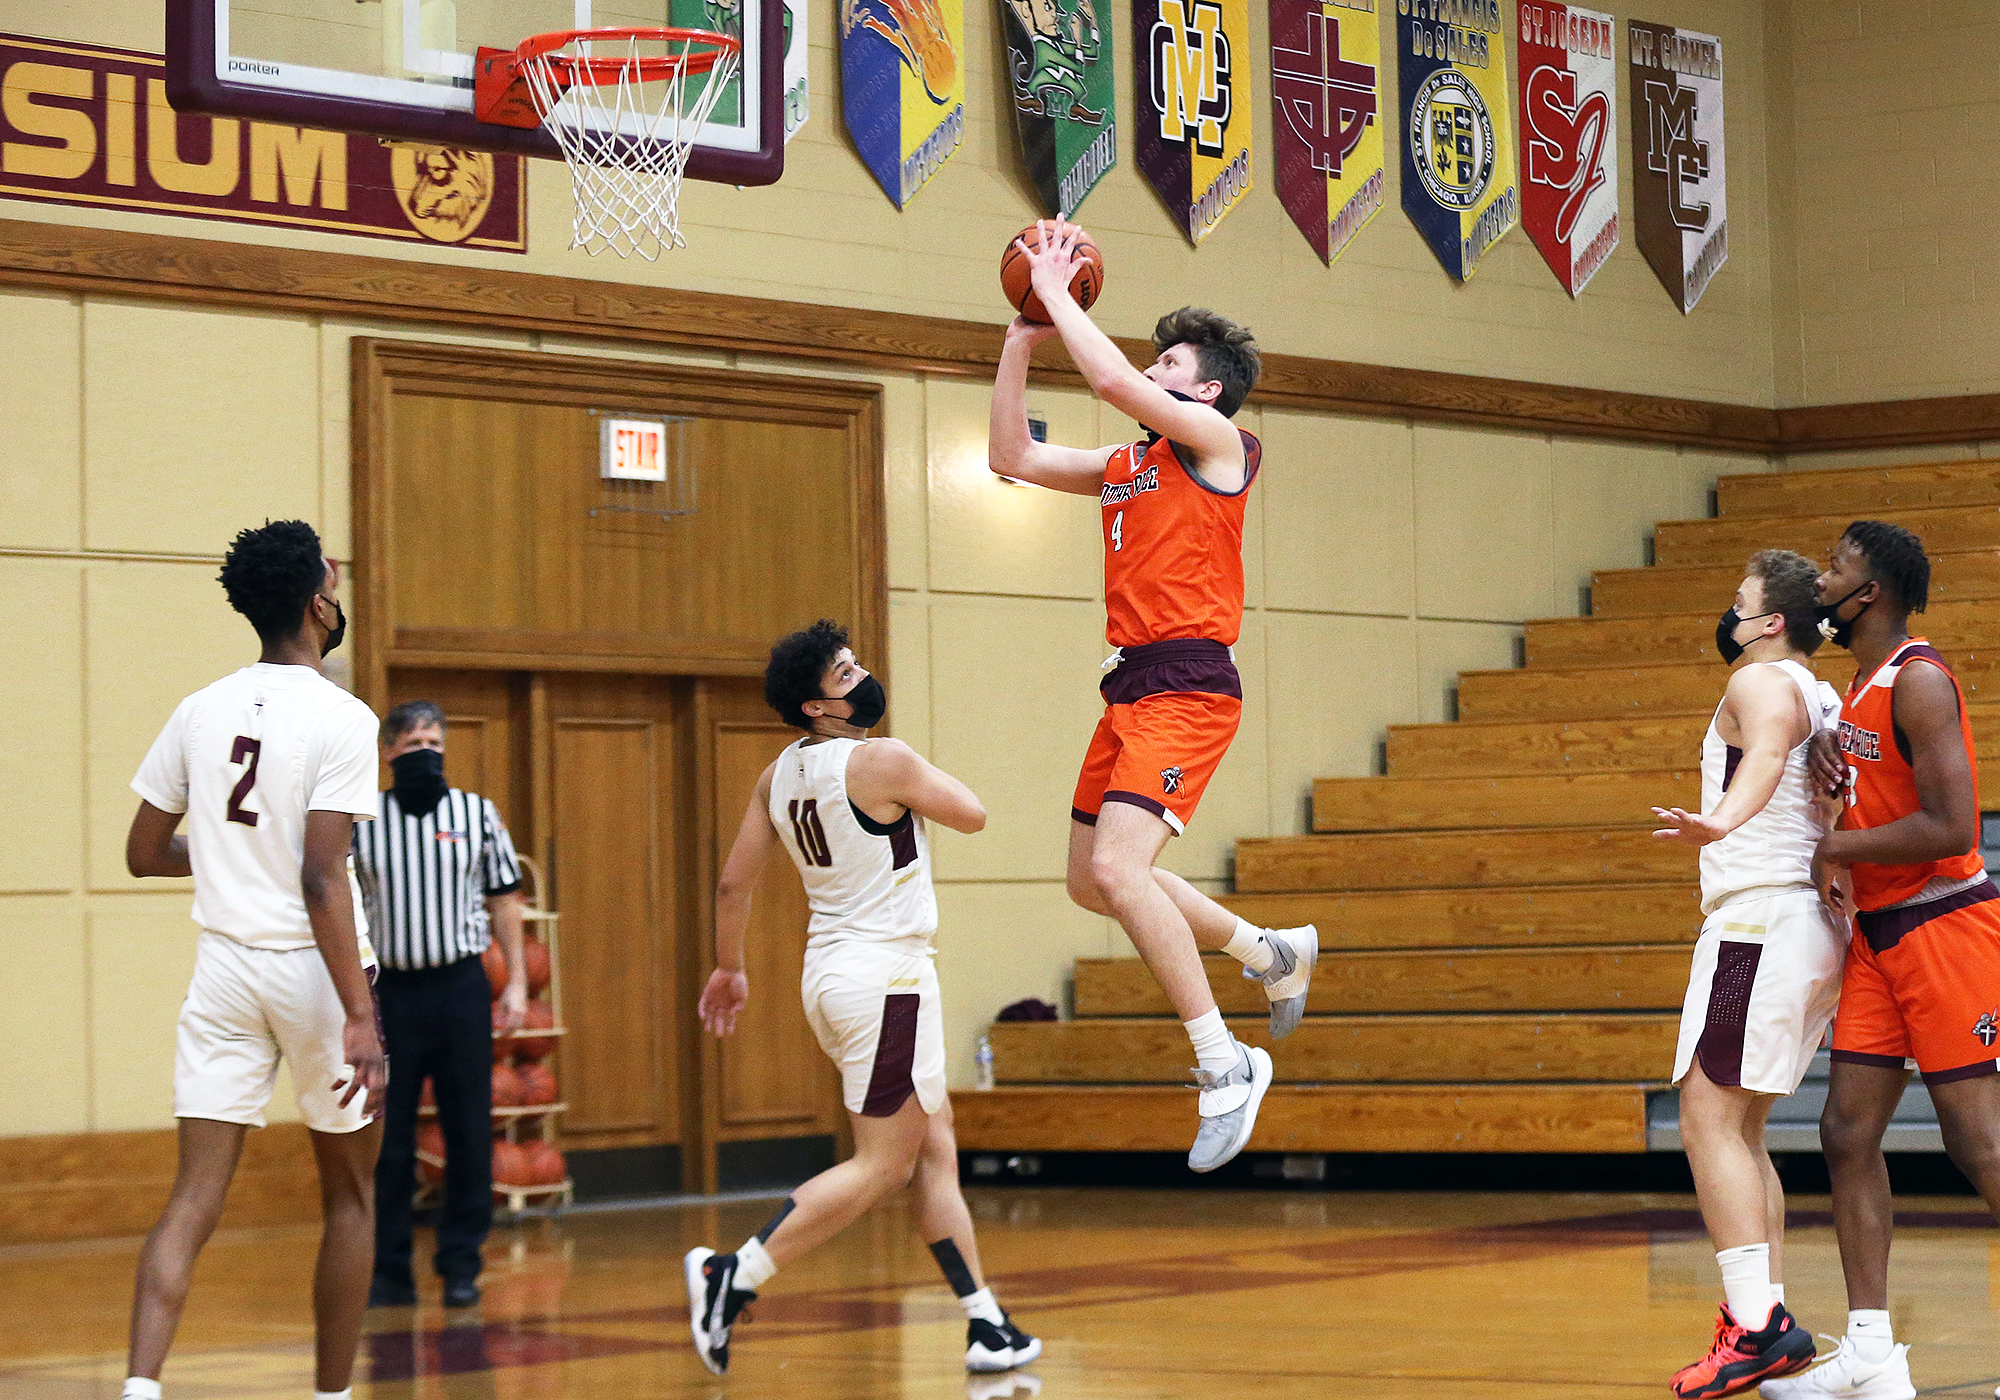 Brother Rice's Frank Cunnea (4) floats in the lane and hits a short jumper against St. Ignatius.